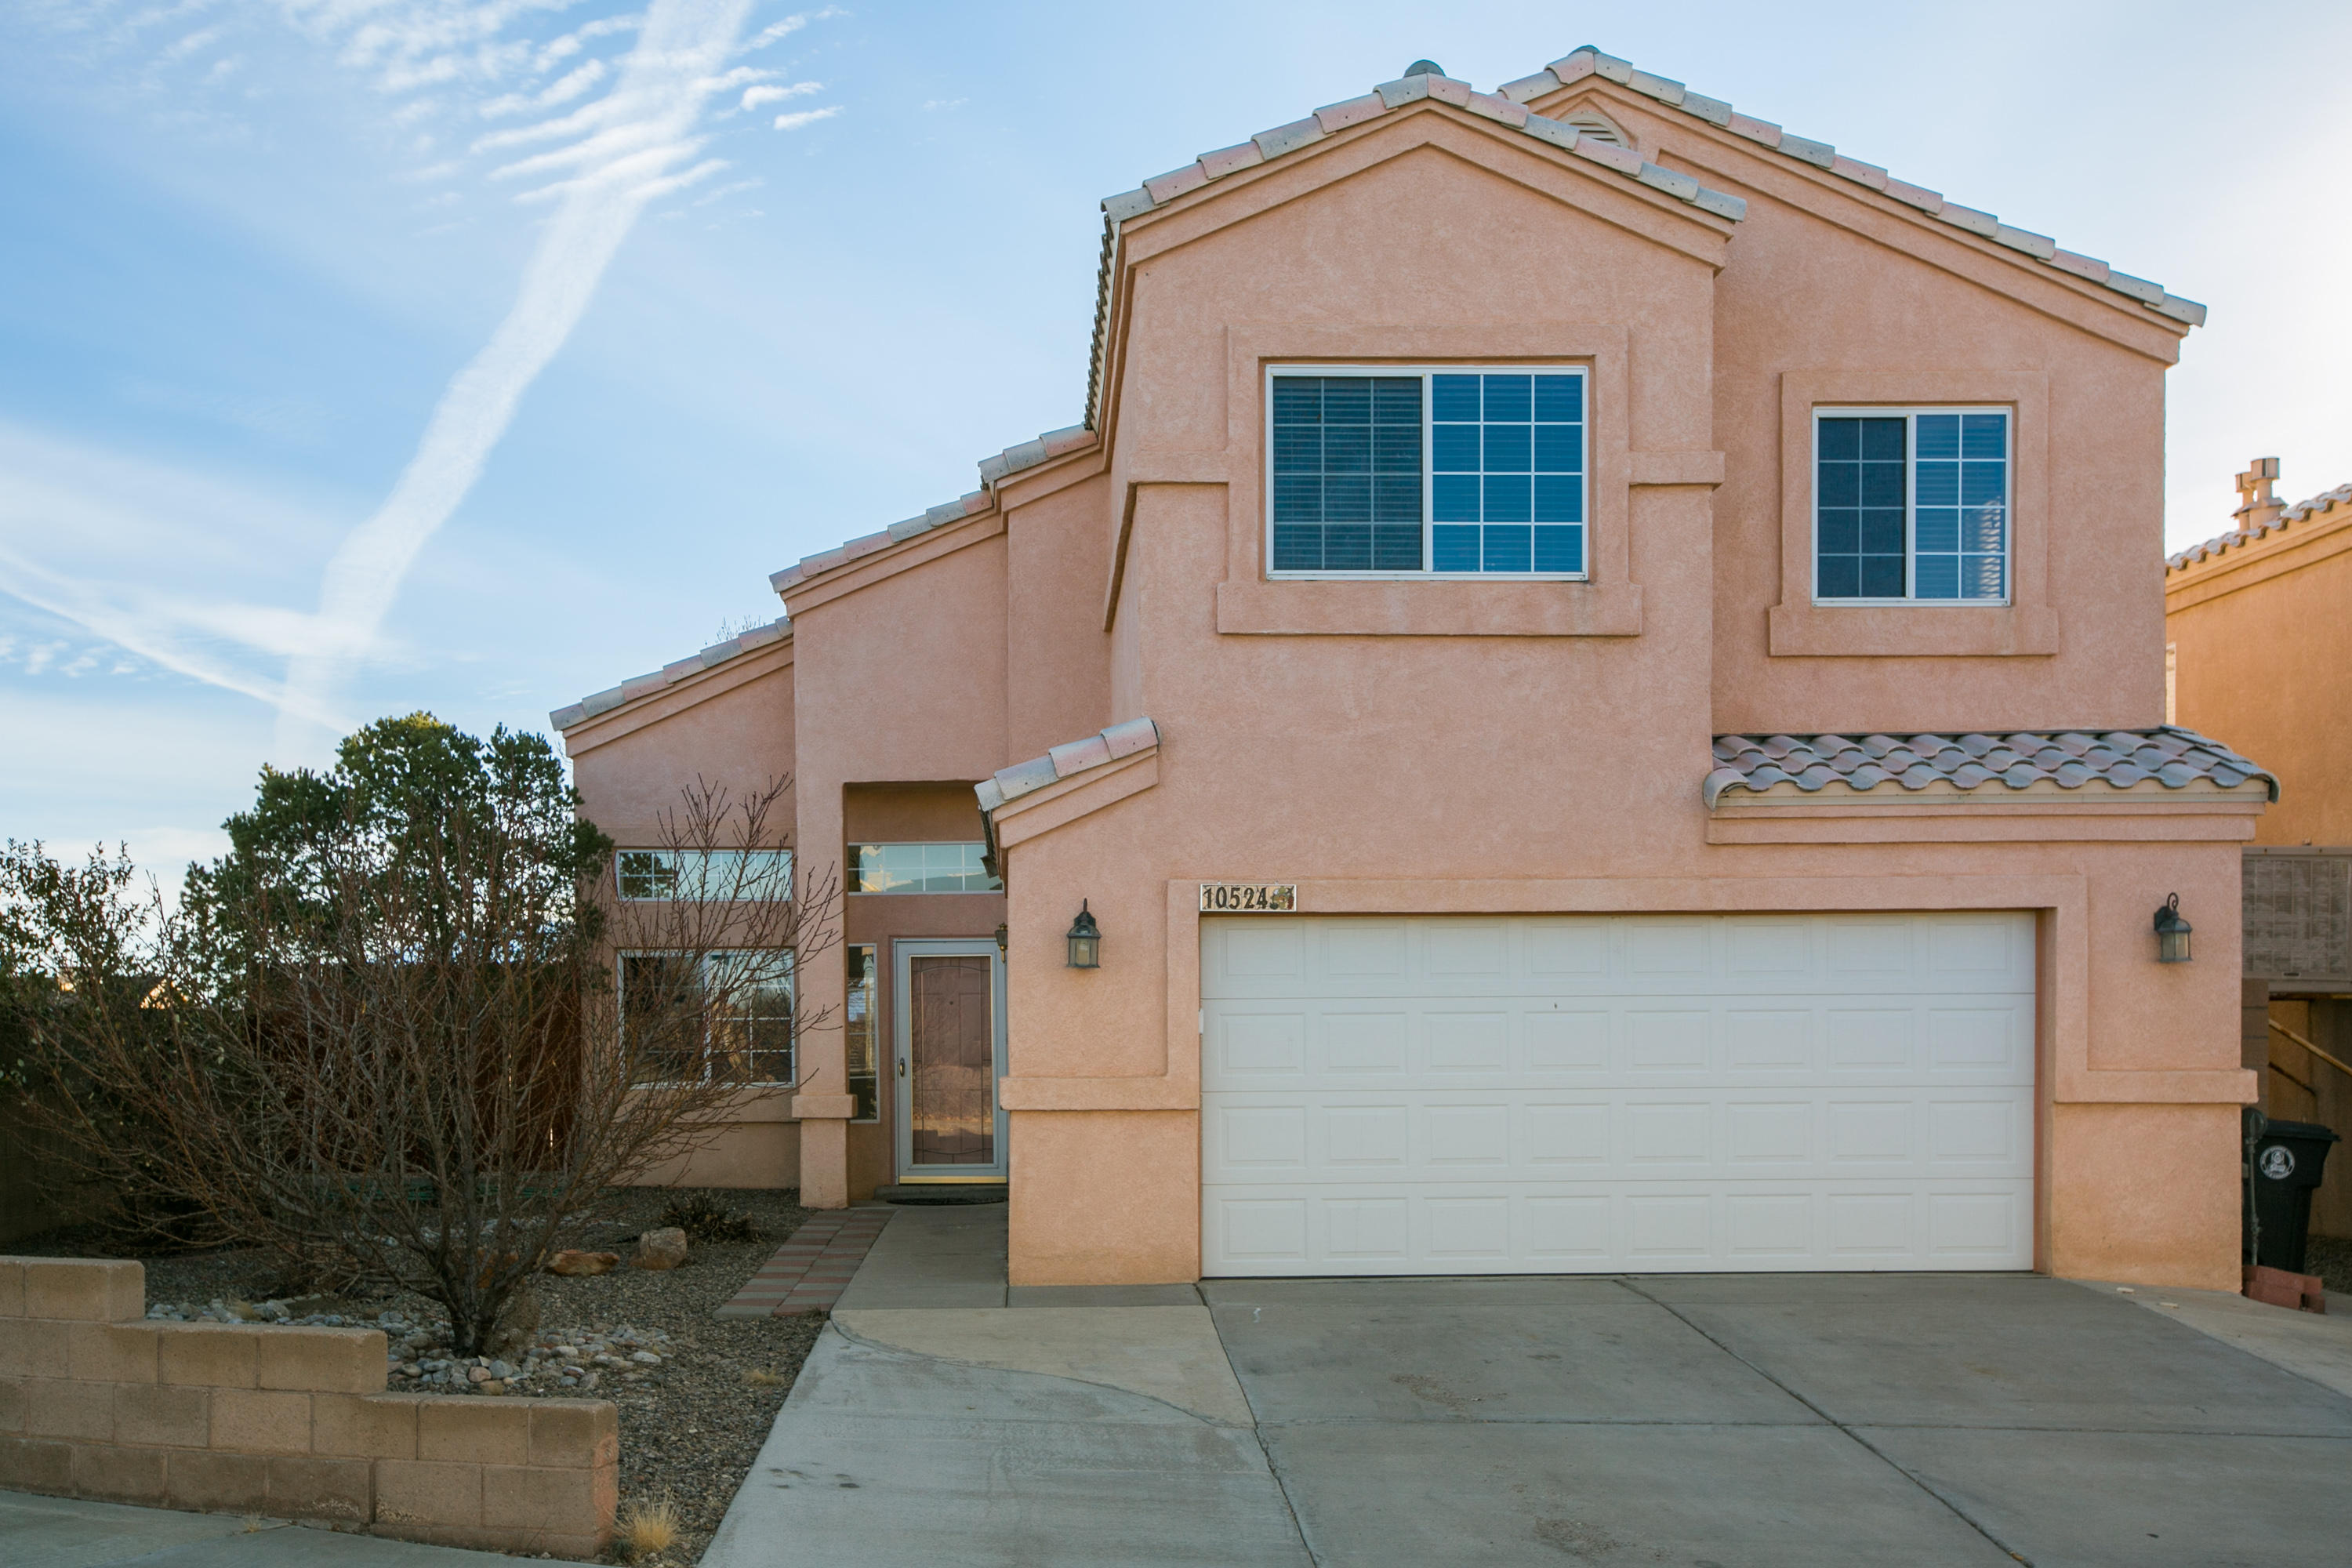 Beautiful home! Welcoming open floor plan with 4 bedrooms. This home has beautiful views of the Sandia Mountains. Enjoy the corner lot with a spacious backyard and a balcony off the master bedroom.